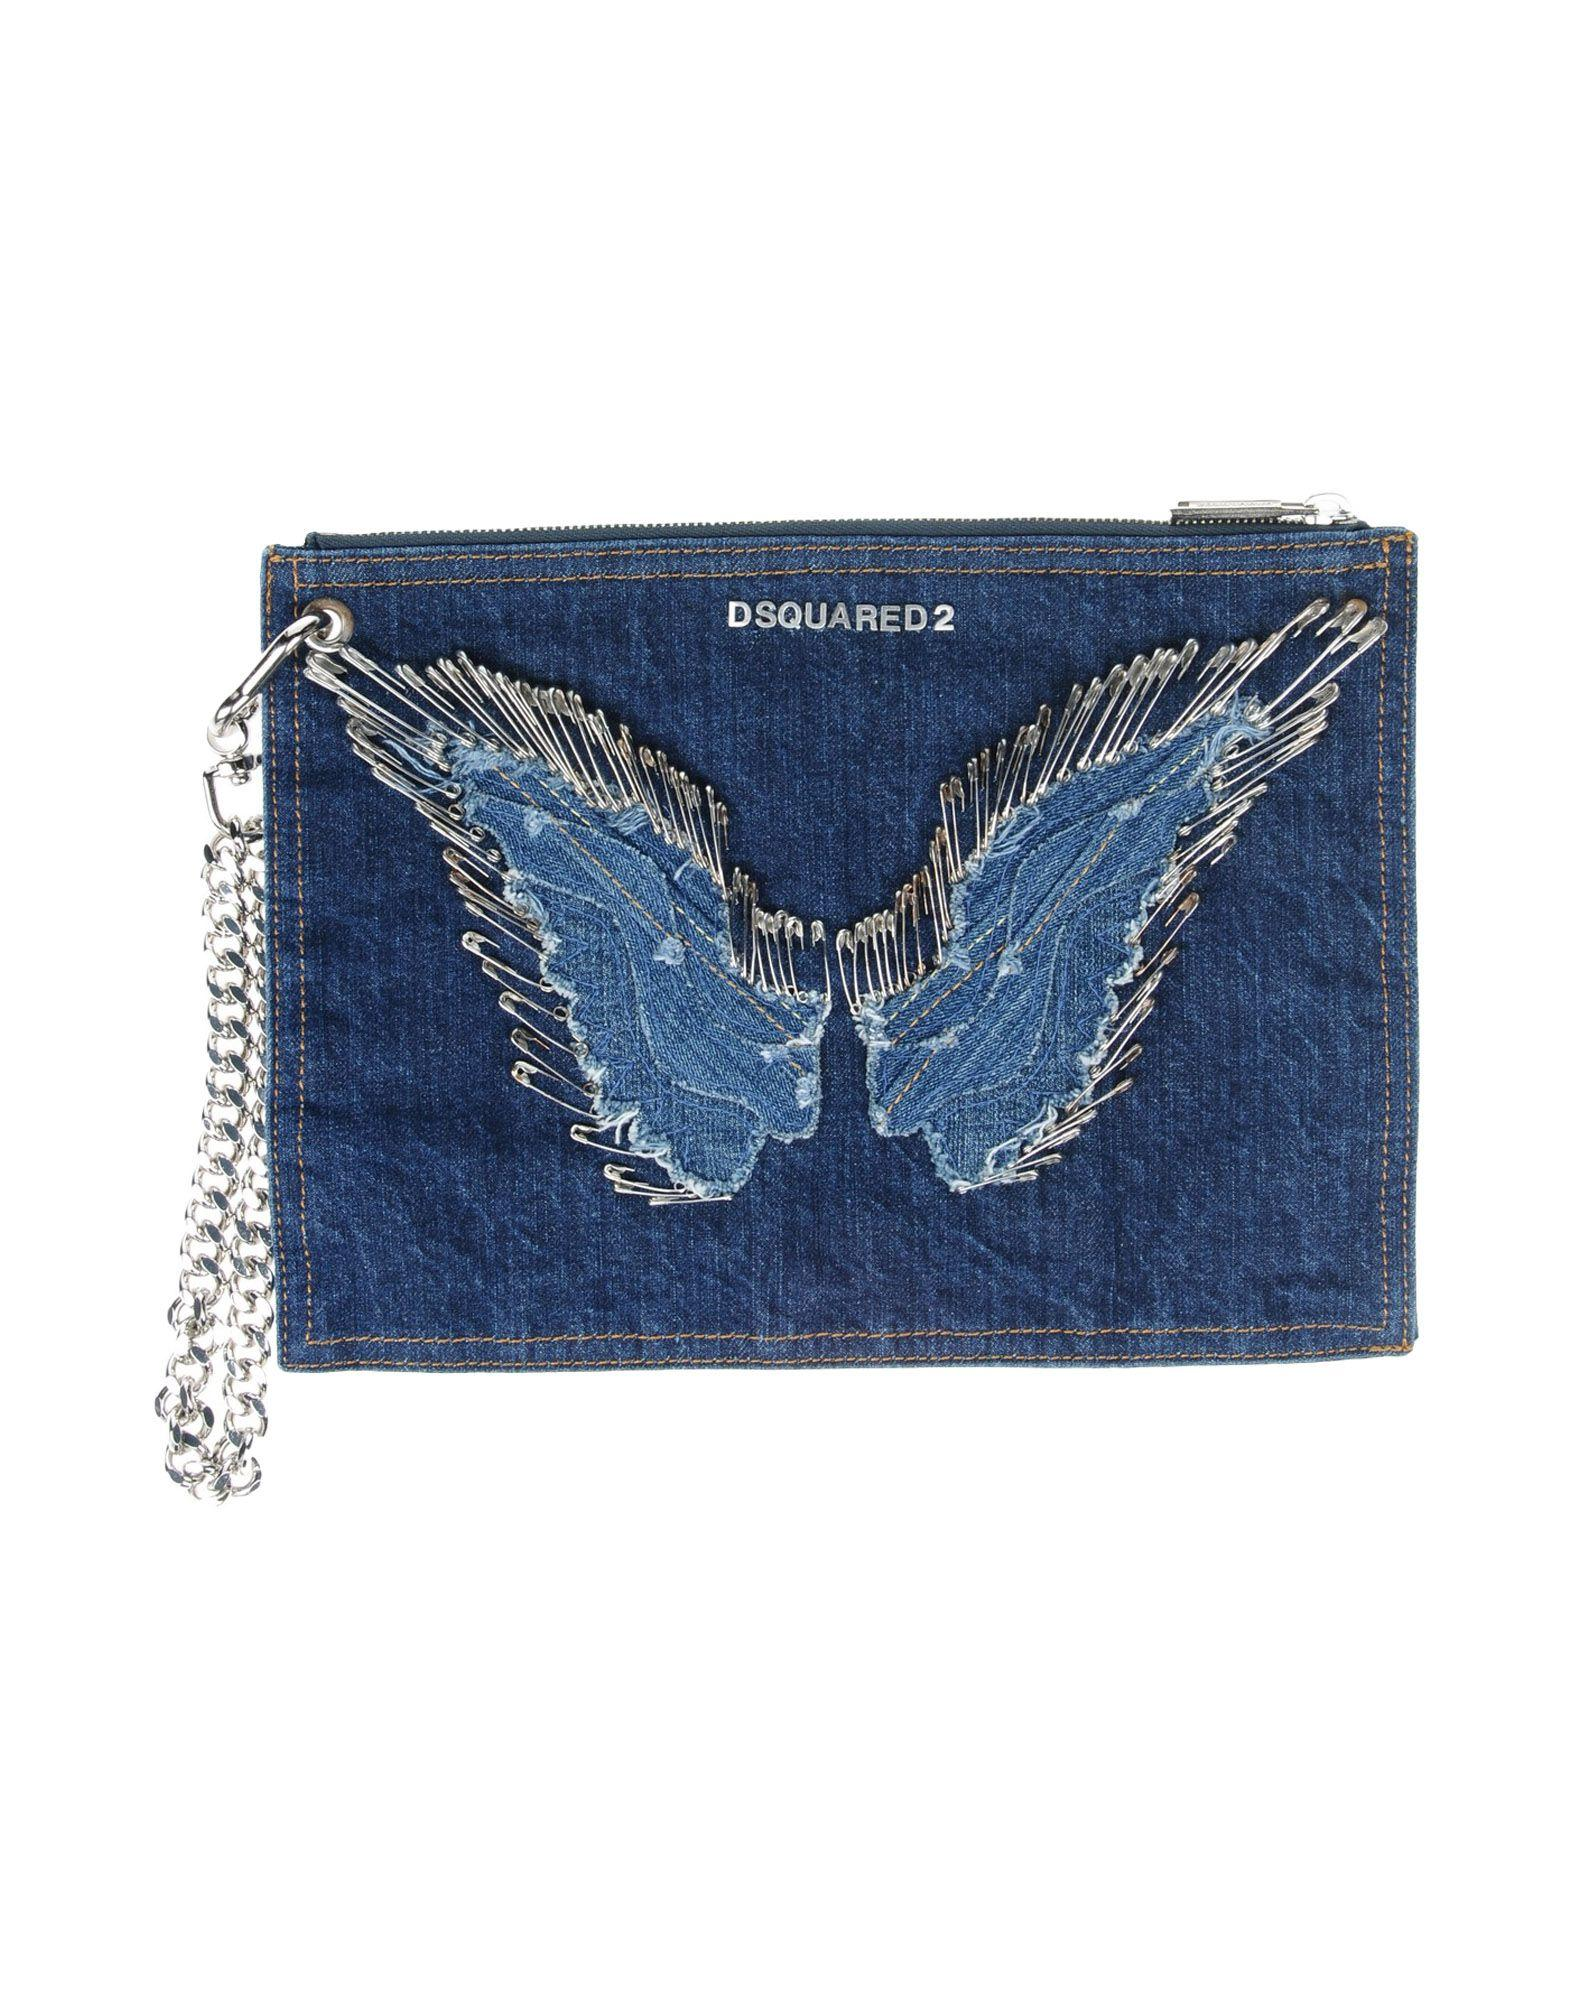 Dsquared2 Handbags In Blue